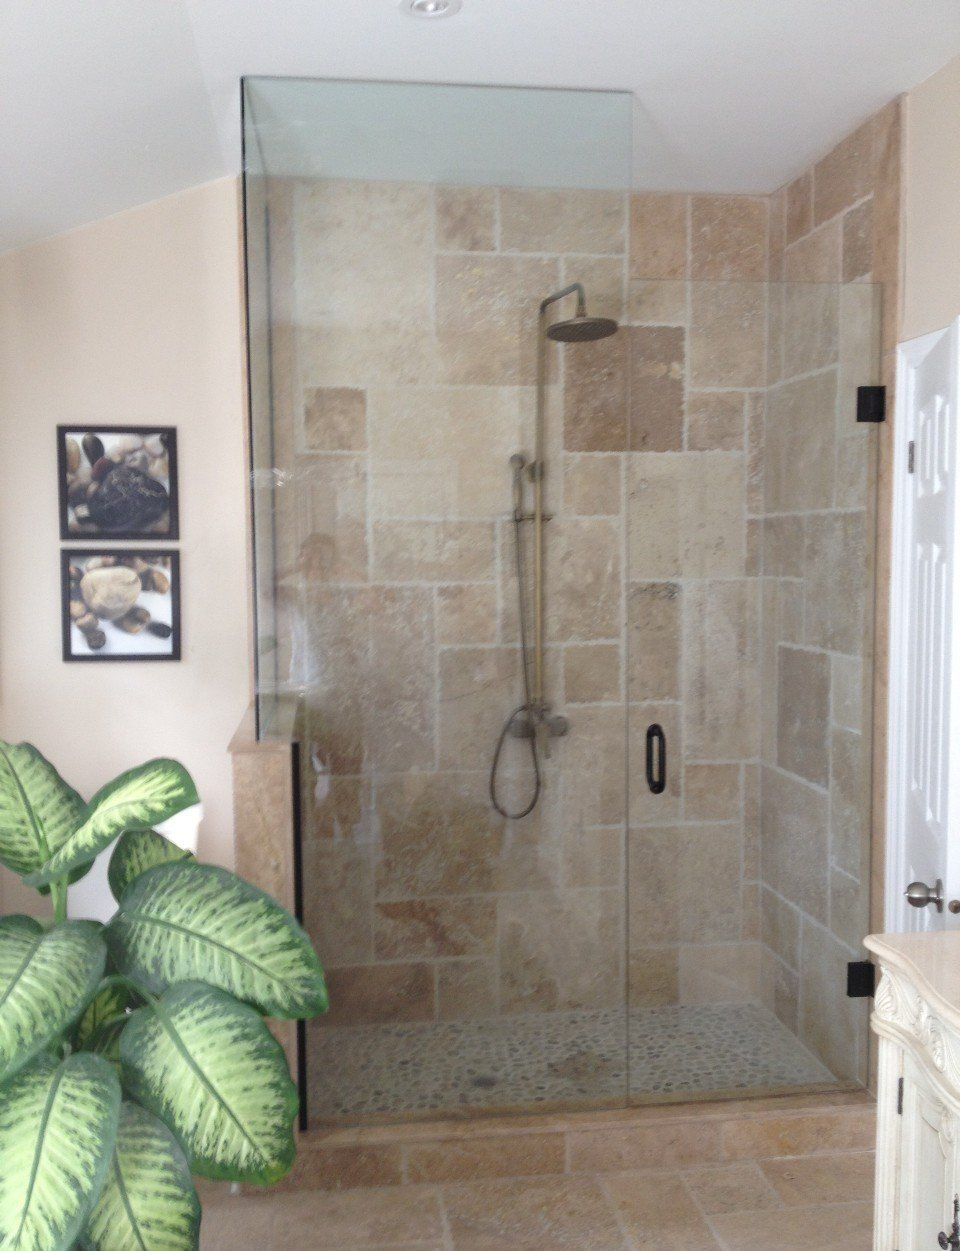 Lowe 39 s glass walk in shower designs bathroom shower Walk in shower designs